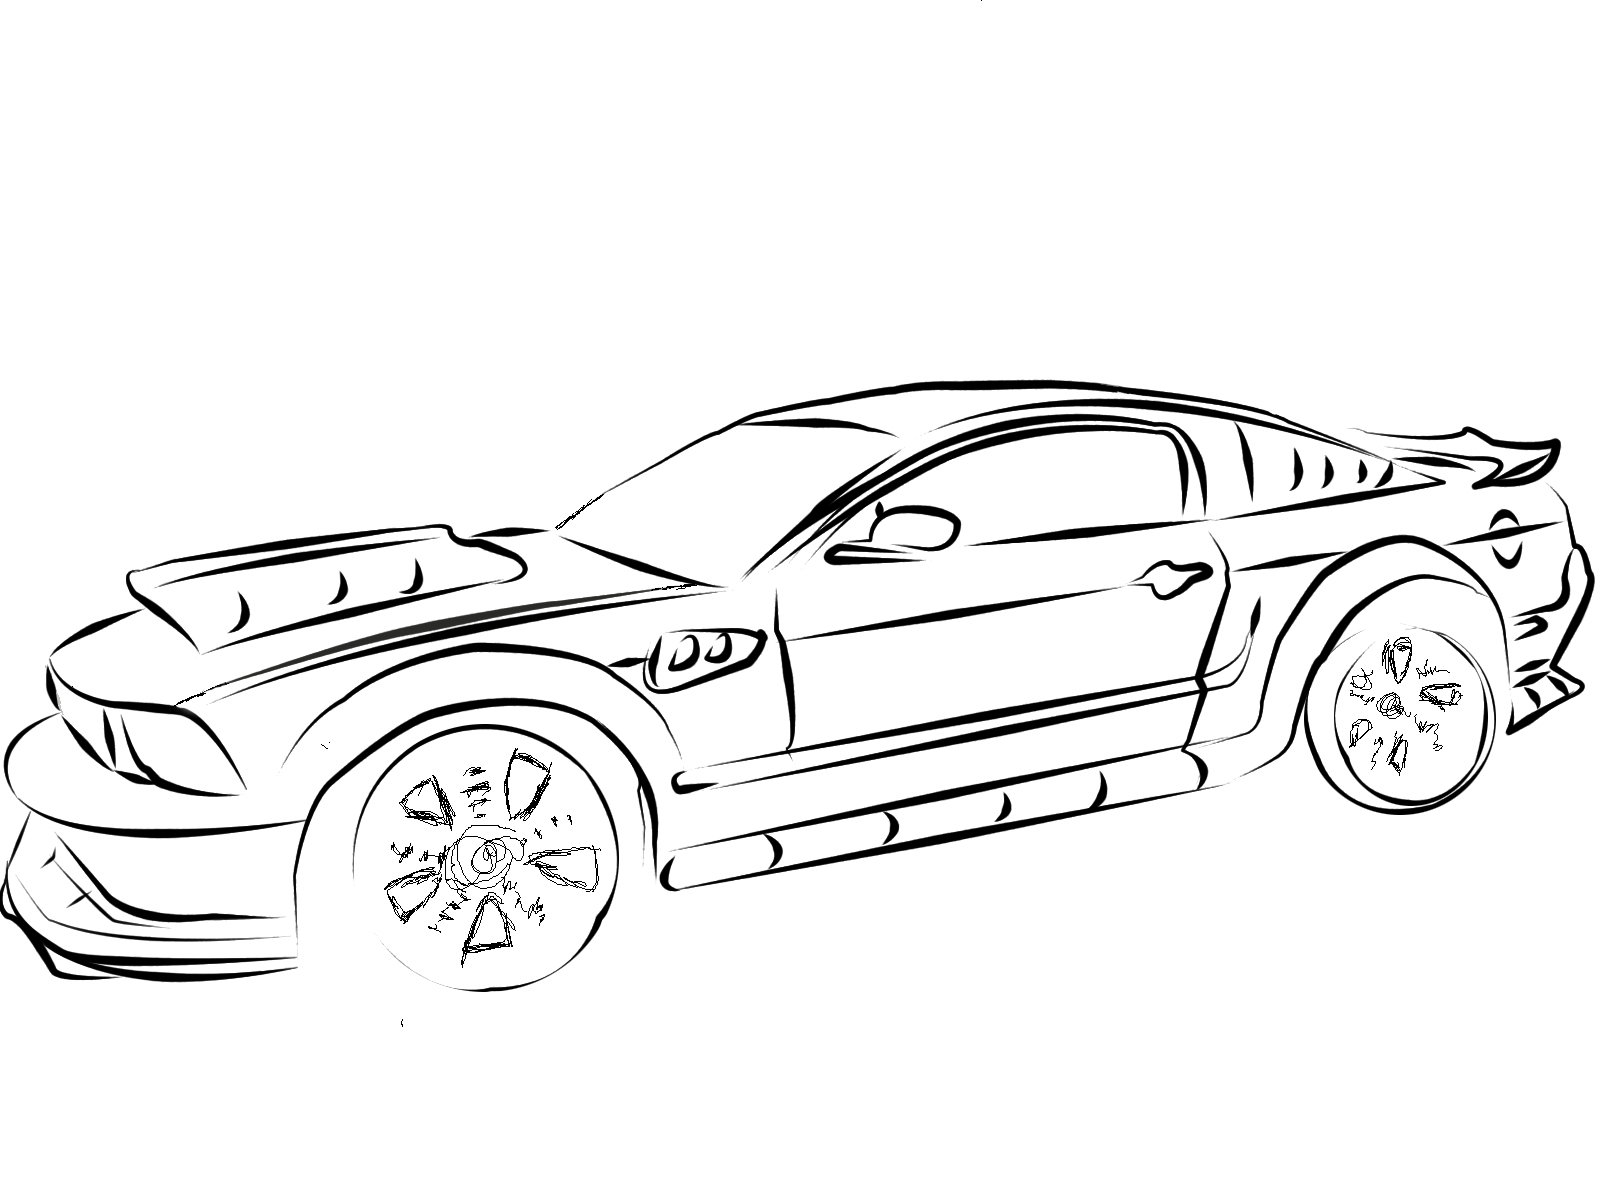 Mustang Car Drawings likewise Imagens Do Mapa Mundi Para Colorir E Imprimir together with P 0900c1528008d3a7 additionally  together with Large Shelby Car Logo. on mustang gt 500